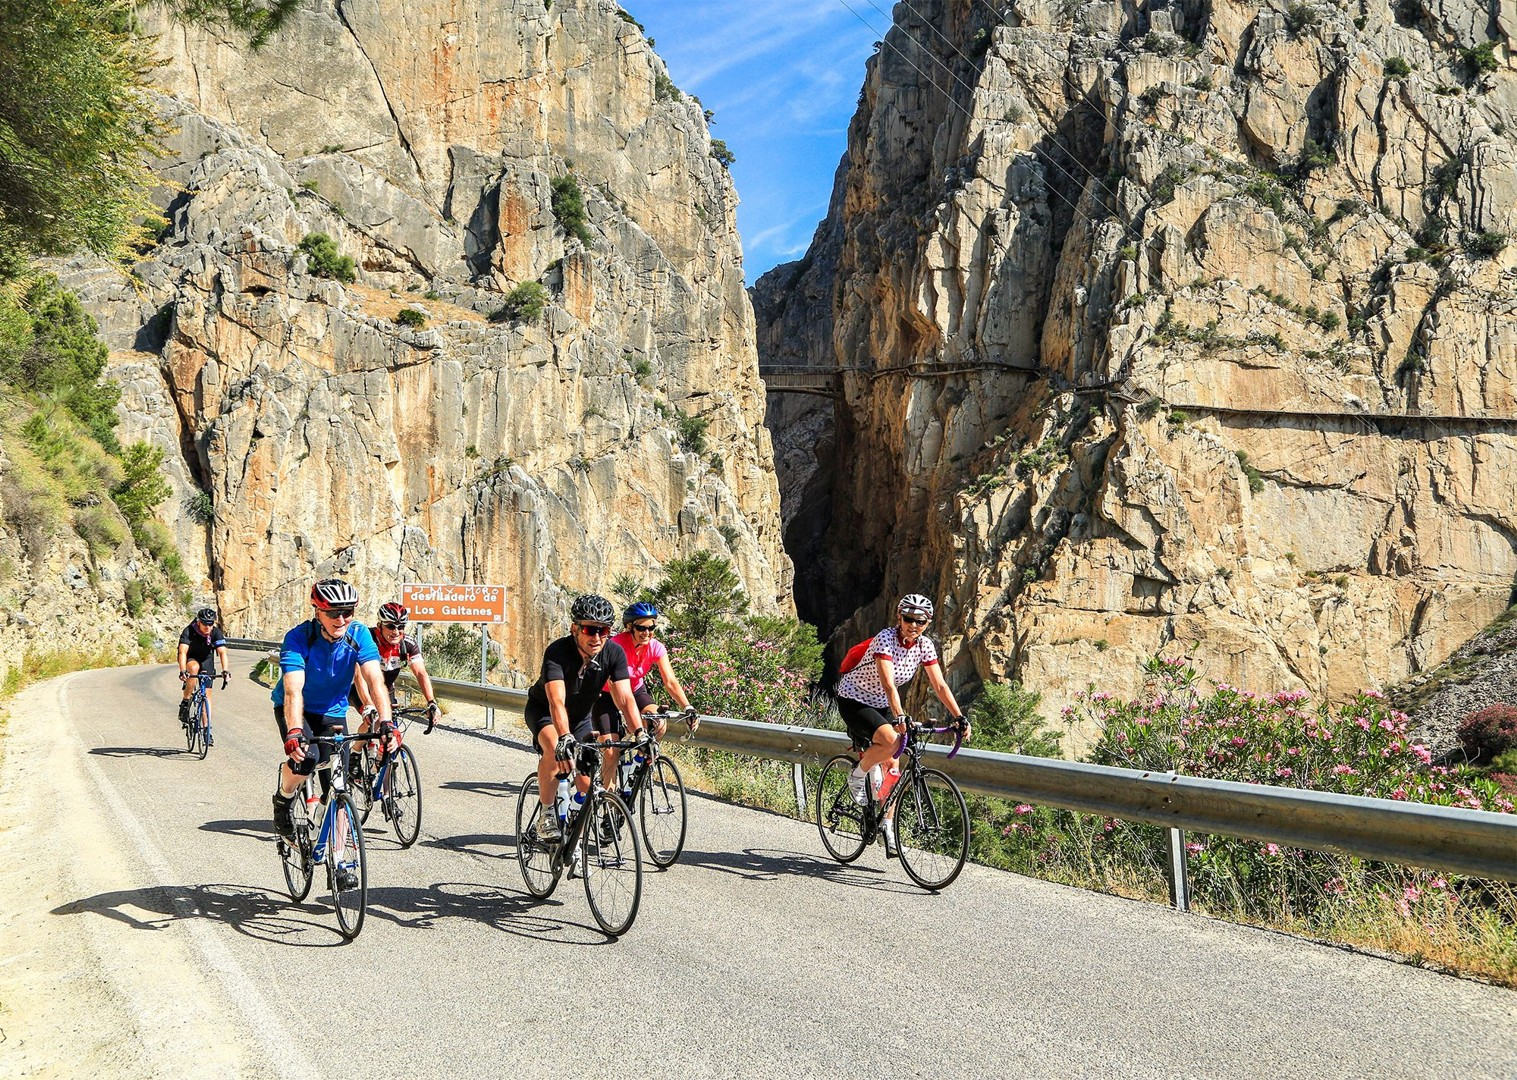 basque-country-to-andalucia-north-to-south-cycling-holiday-saddle-skedaddle.jpg - Spain - Basque Country to Andalucia - North to South (21 Days) - Guided Road Cycling Holiday - Road Cycling